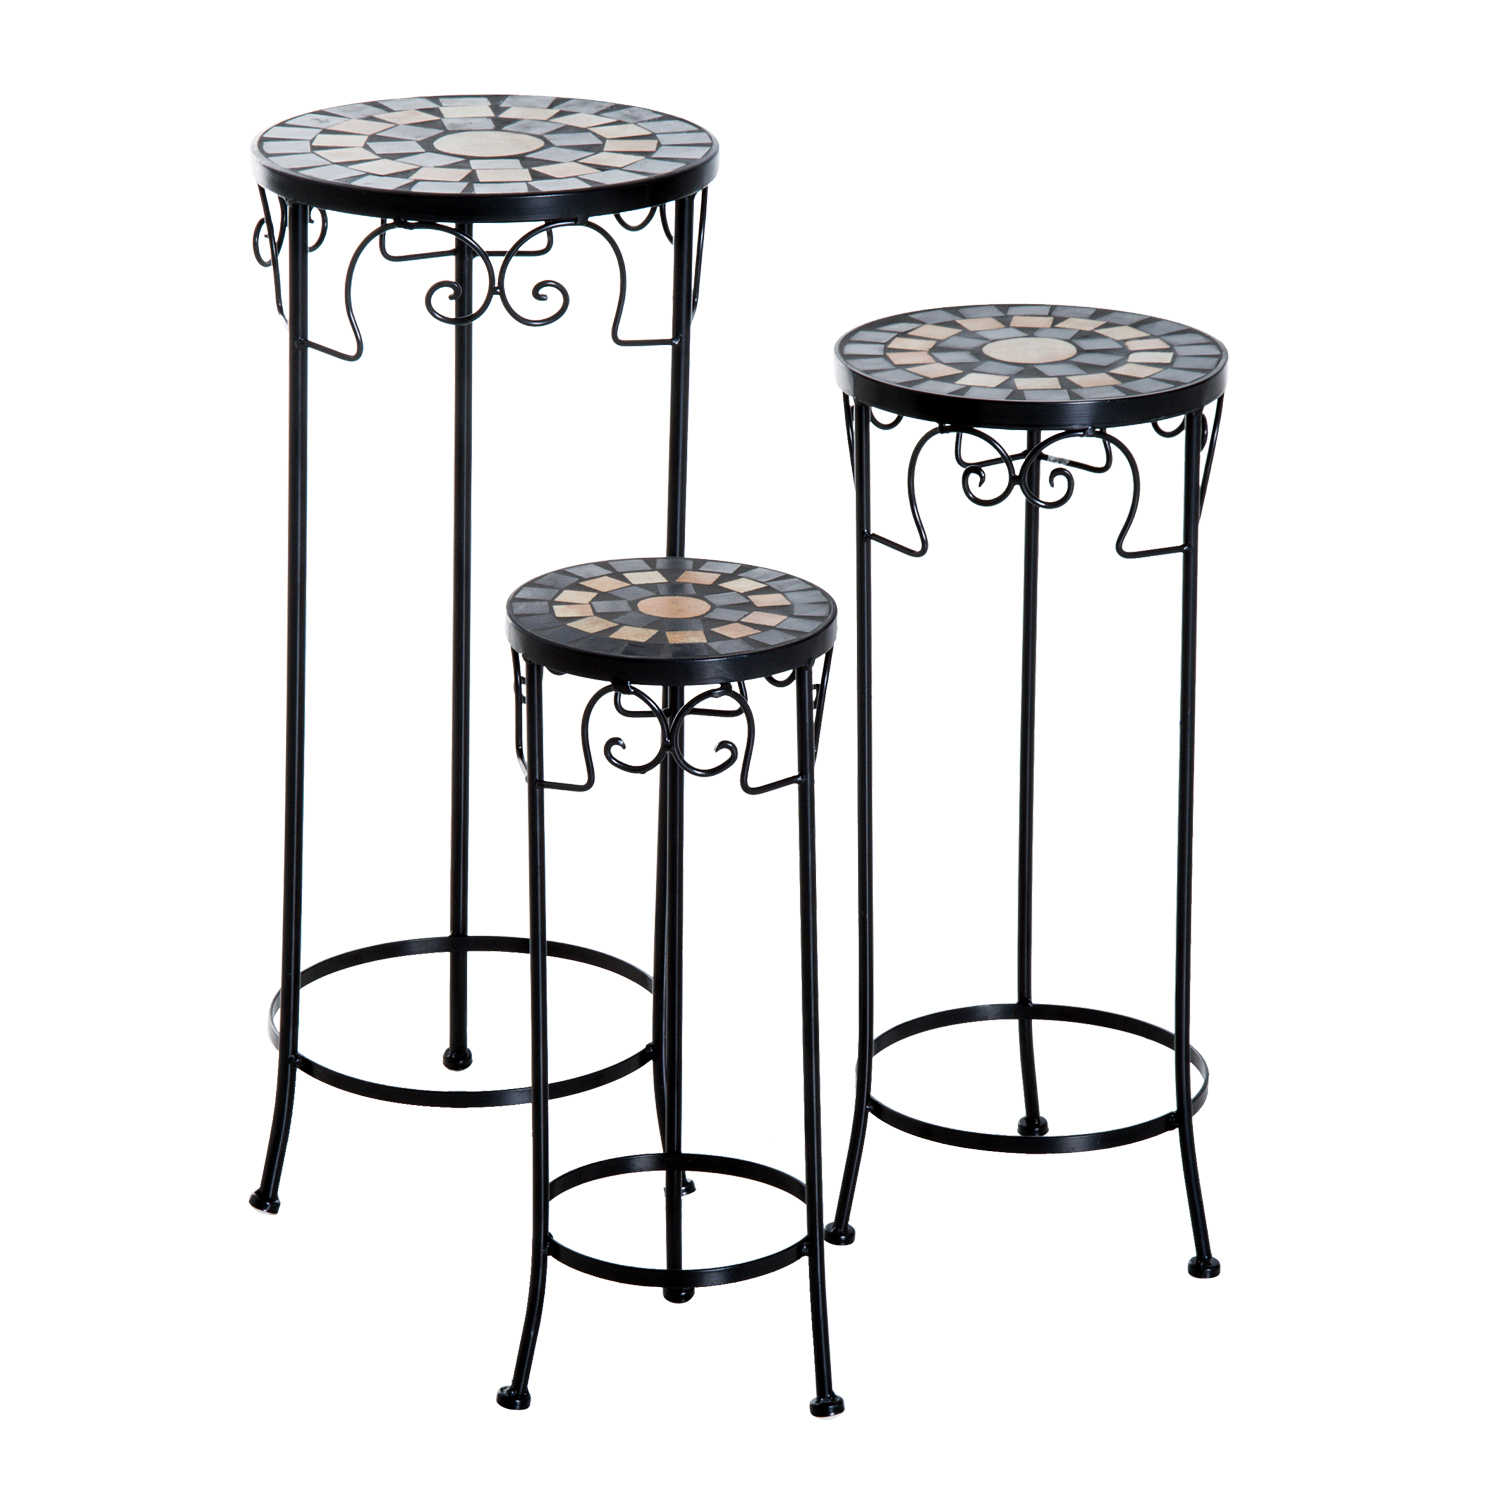 Outsunny Set of 3 Pcs Plant Stand-Black — MH Star